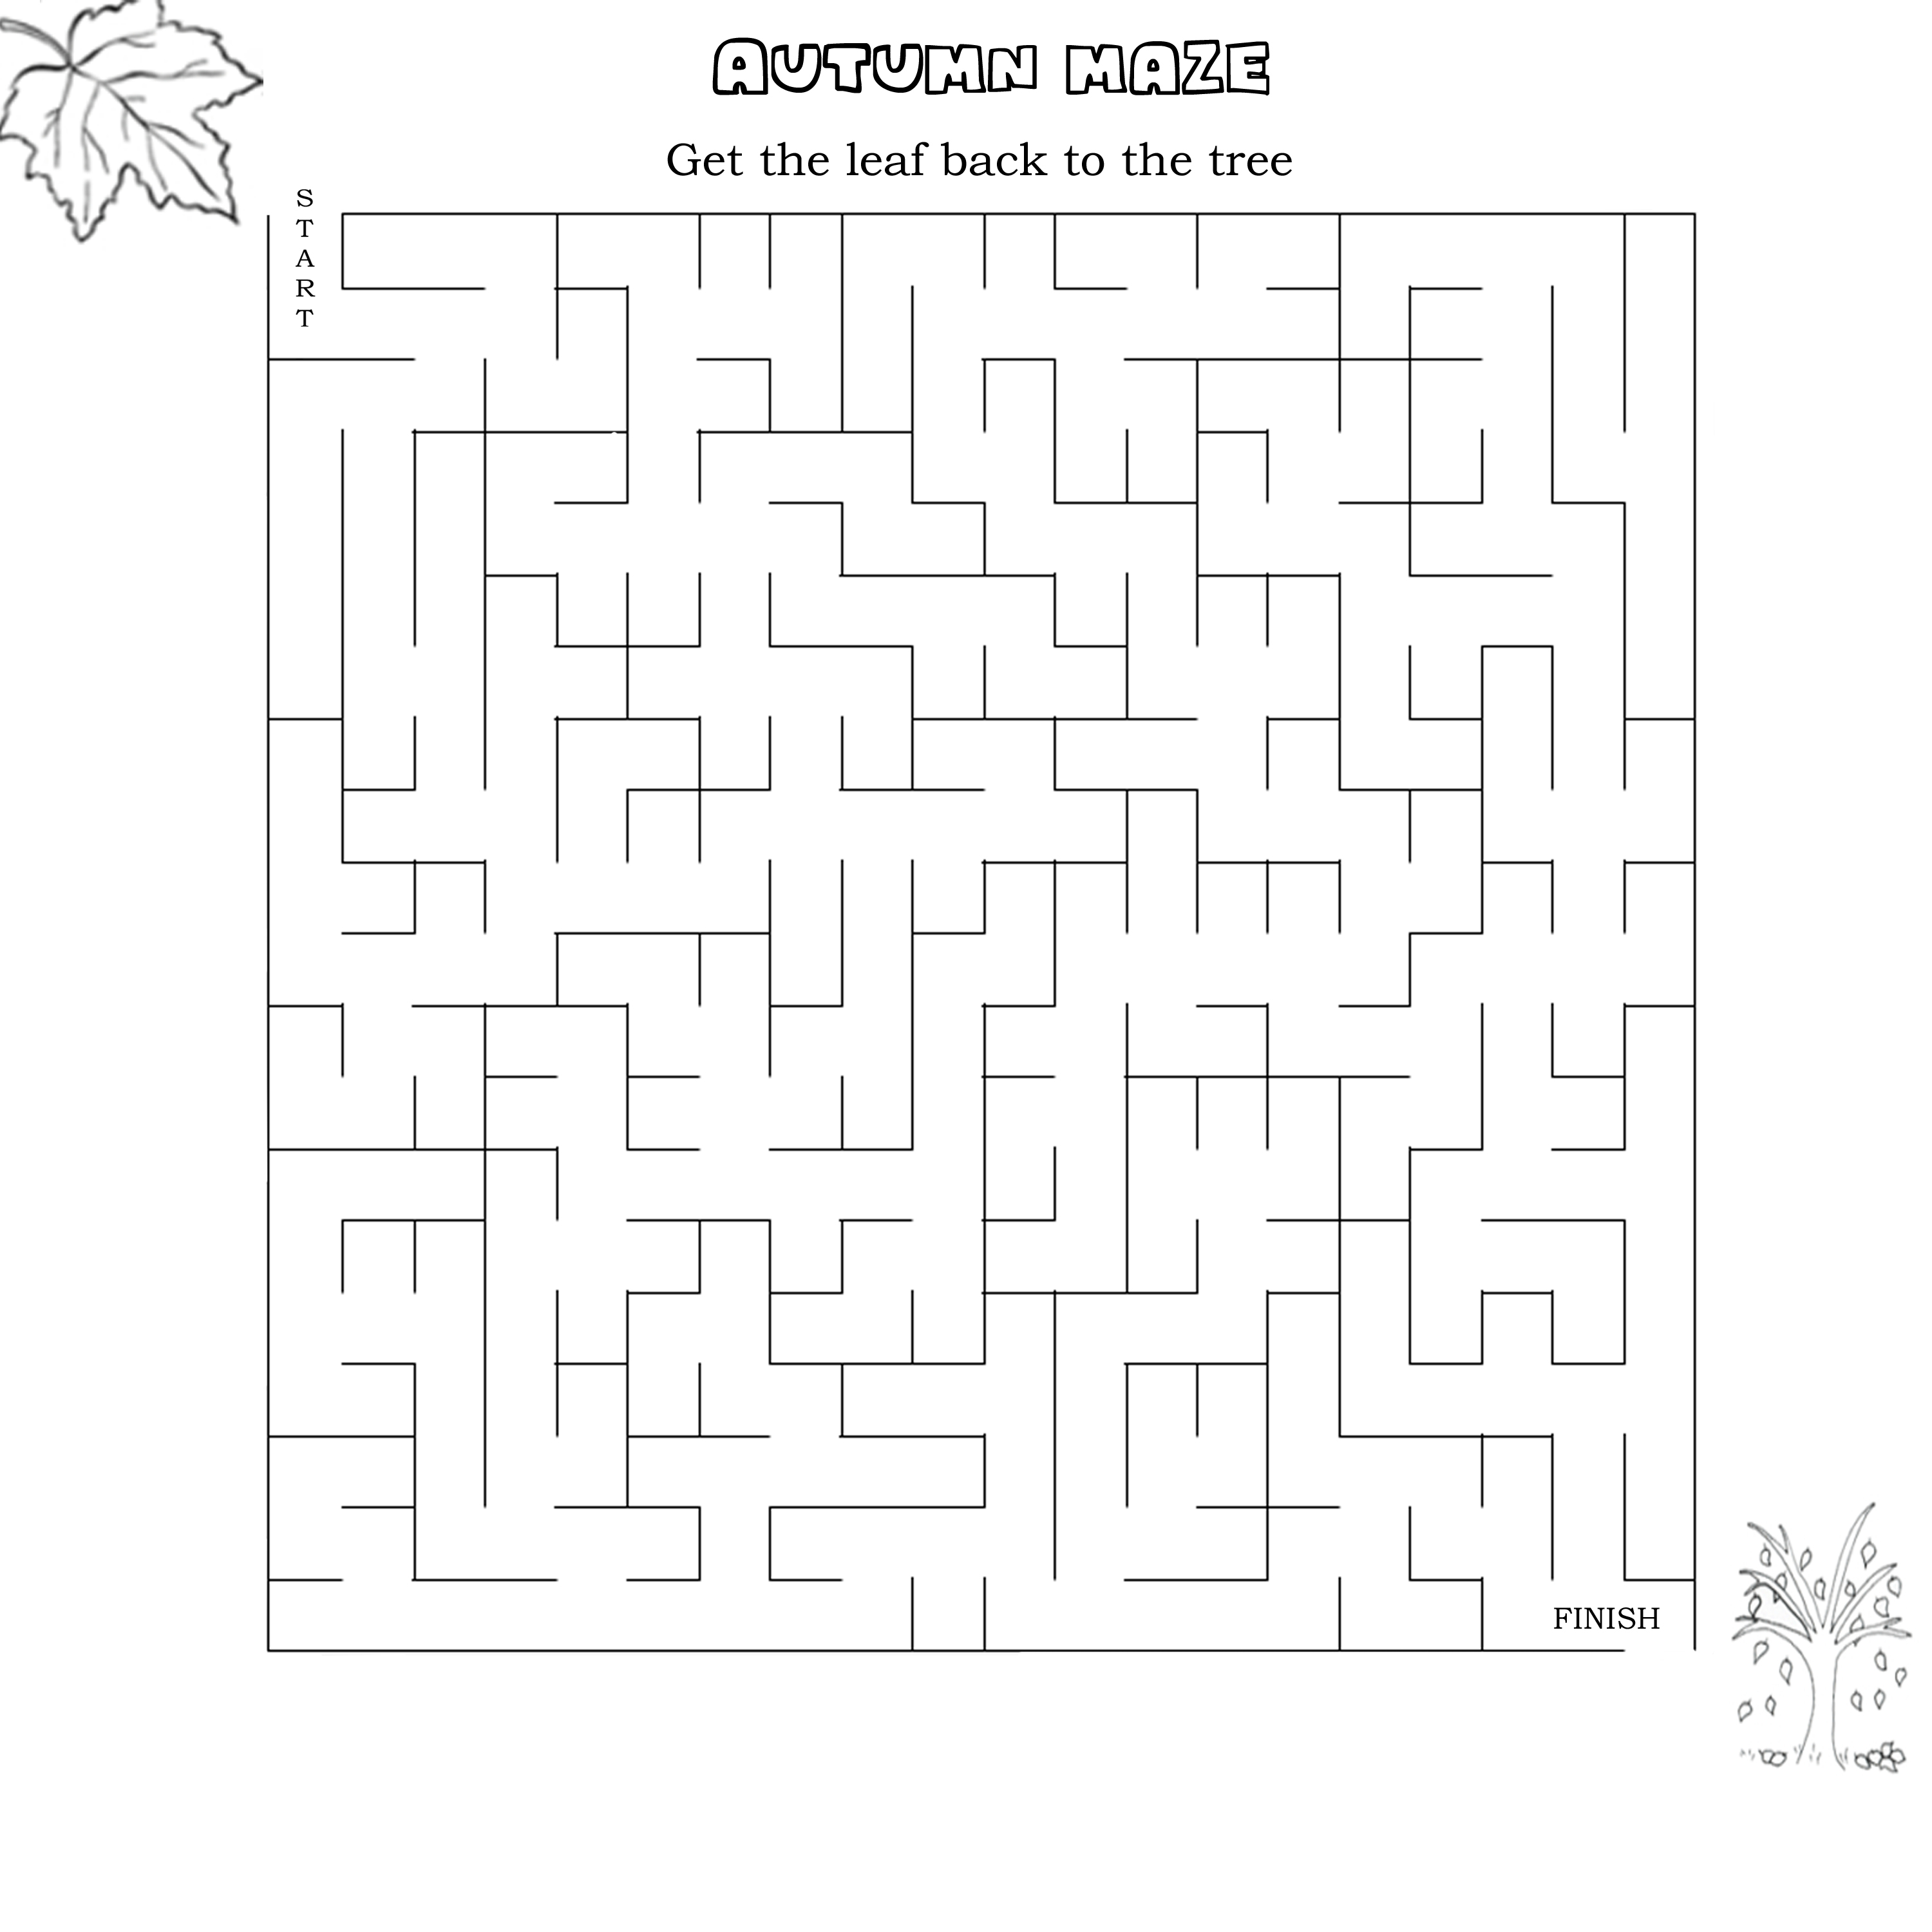 5 Best Images Of Autumn Leaf Maze Printable